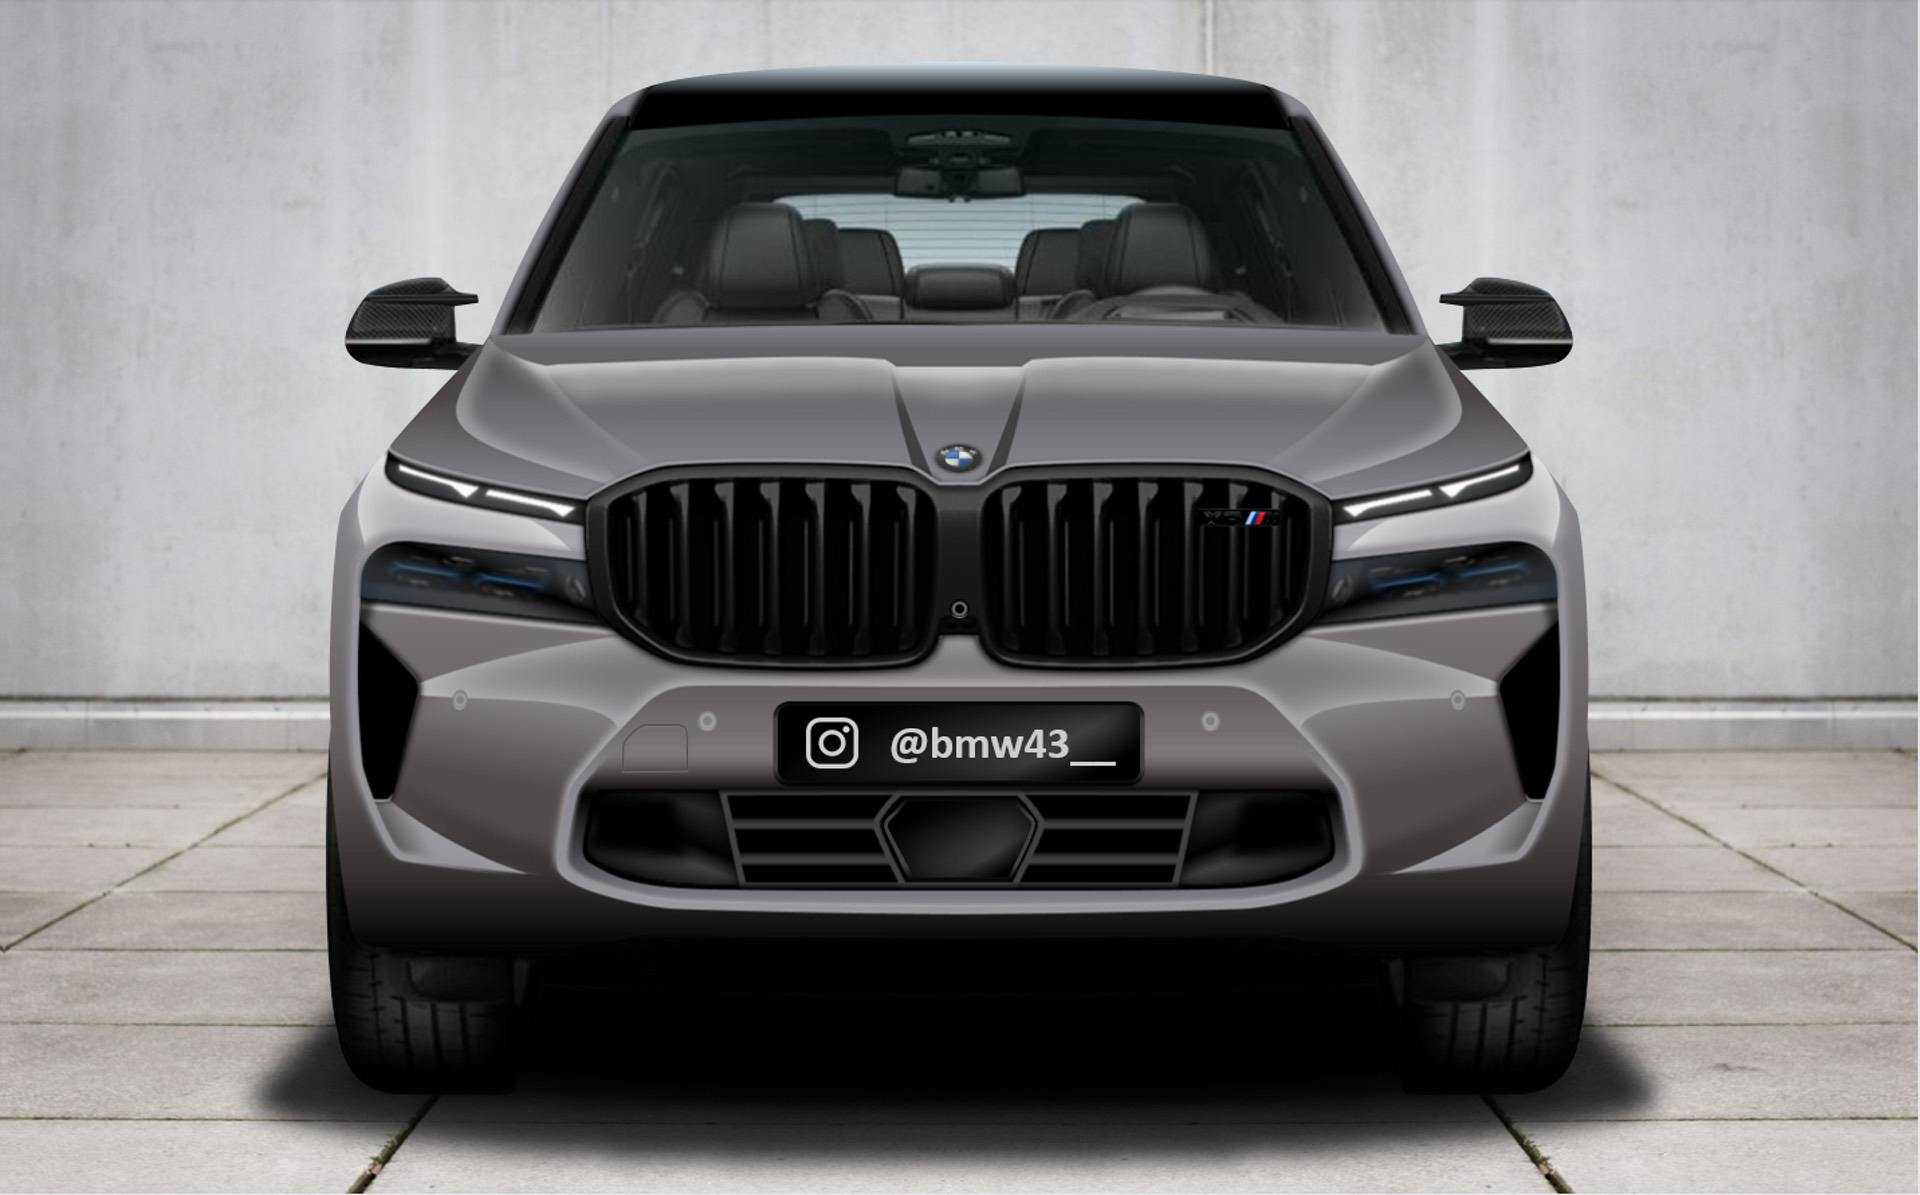 BMW X8 M Rendered Images Surfaces Online Again, Promises 700+ Horsepower